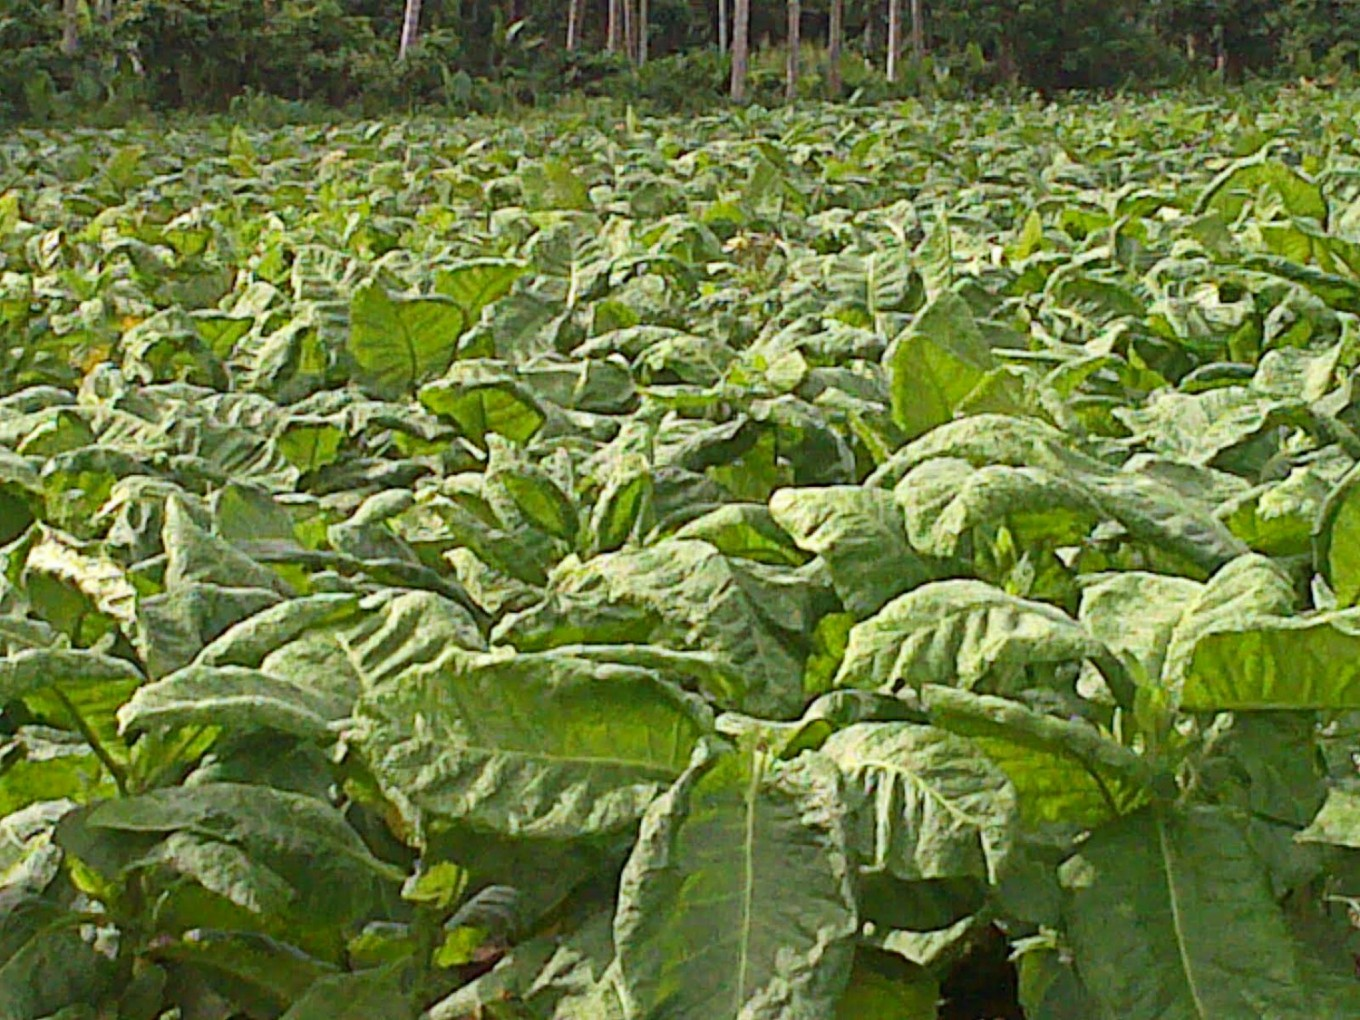 NTB tobacco leaf prices monitored: Official